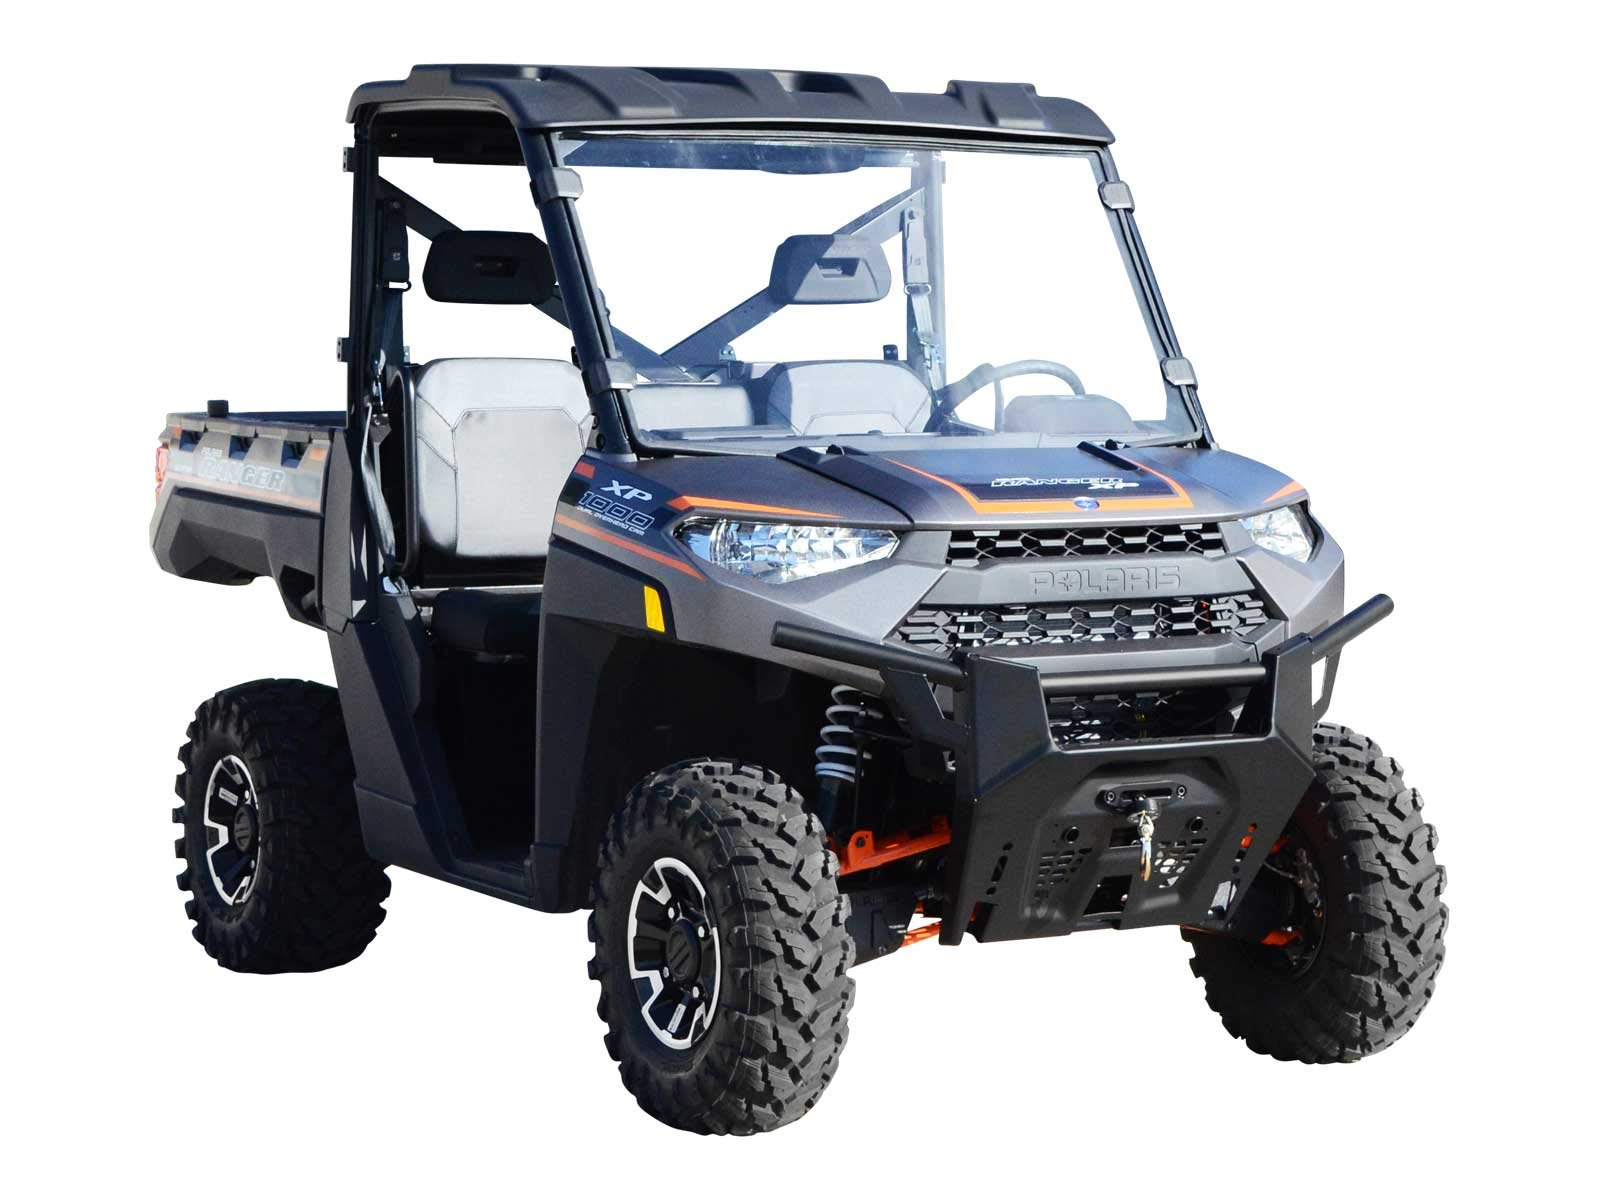 SuperATV Heavy Duty Clear Full Windshield for Polaris Ranger Full Size XP 900/900 Crew (2013+) - Installs in 5 Minutes! by SuperATV.com